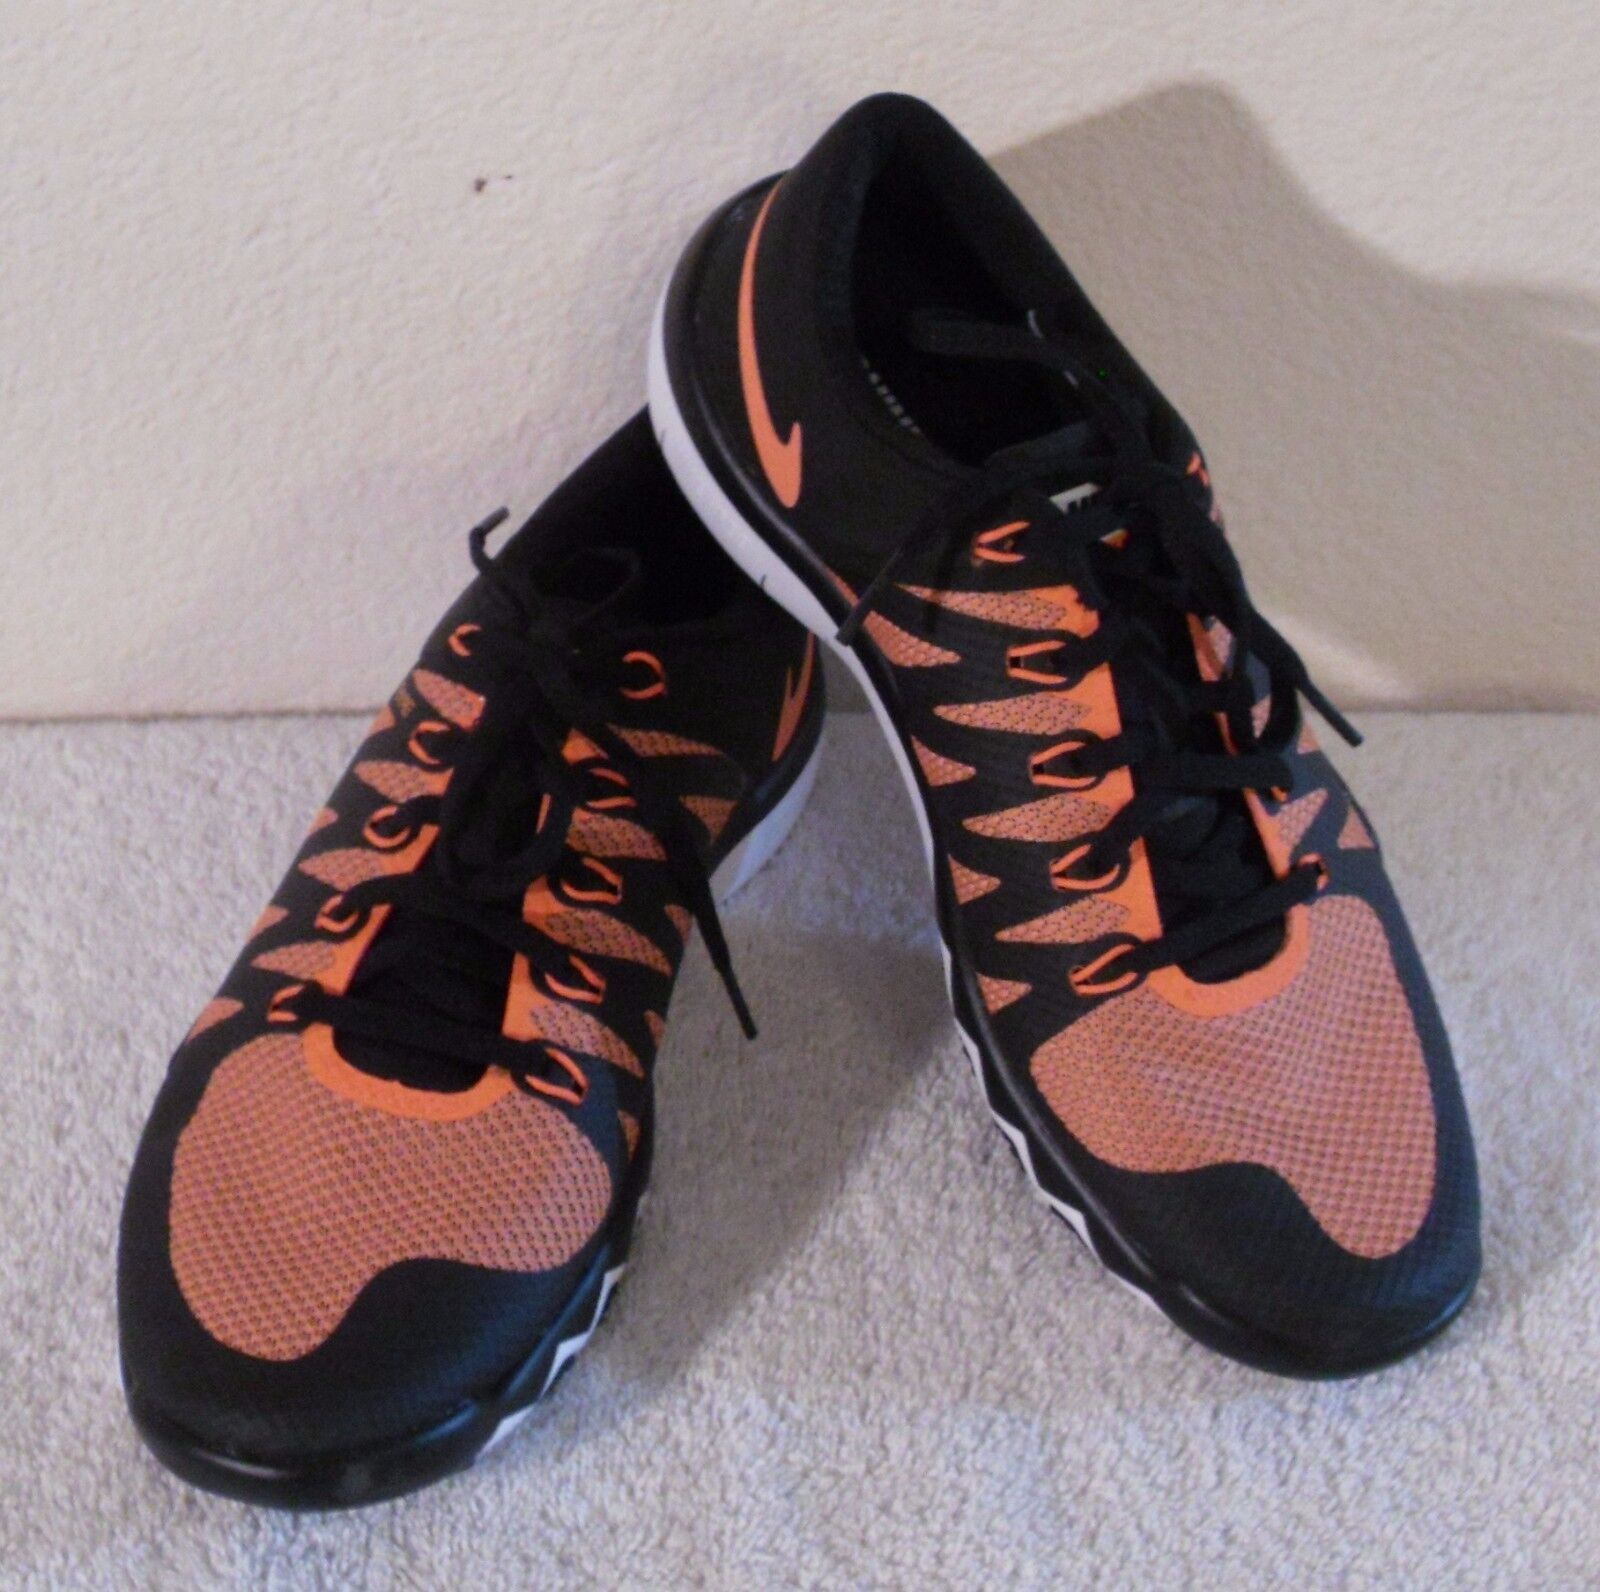 NEW Nike Free Trainer 5.0 V6 Mens Training Shoes 7.5 Black/Orange MSRPPrice reduction Wild casual shoes